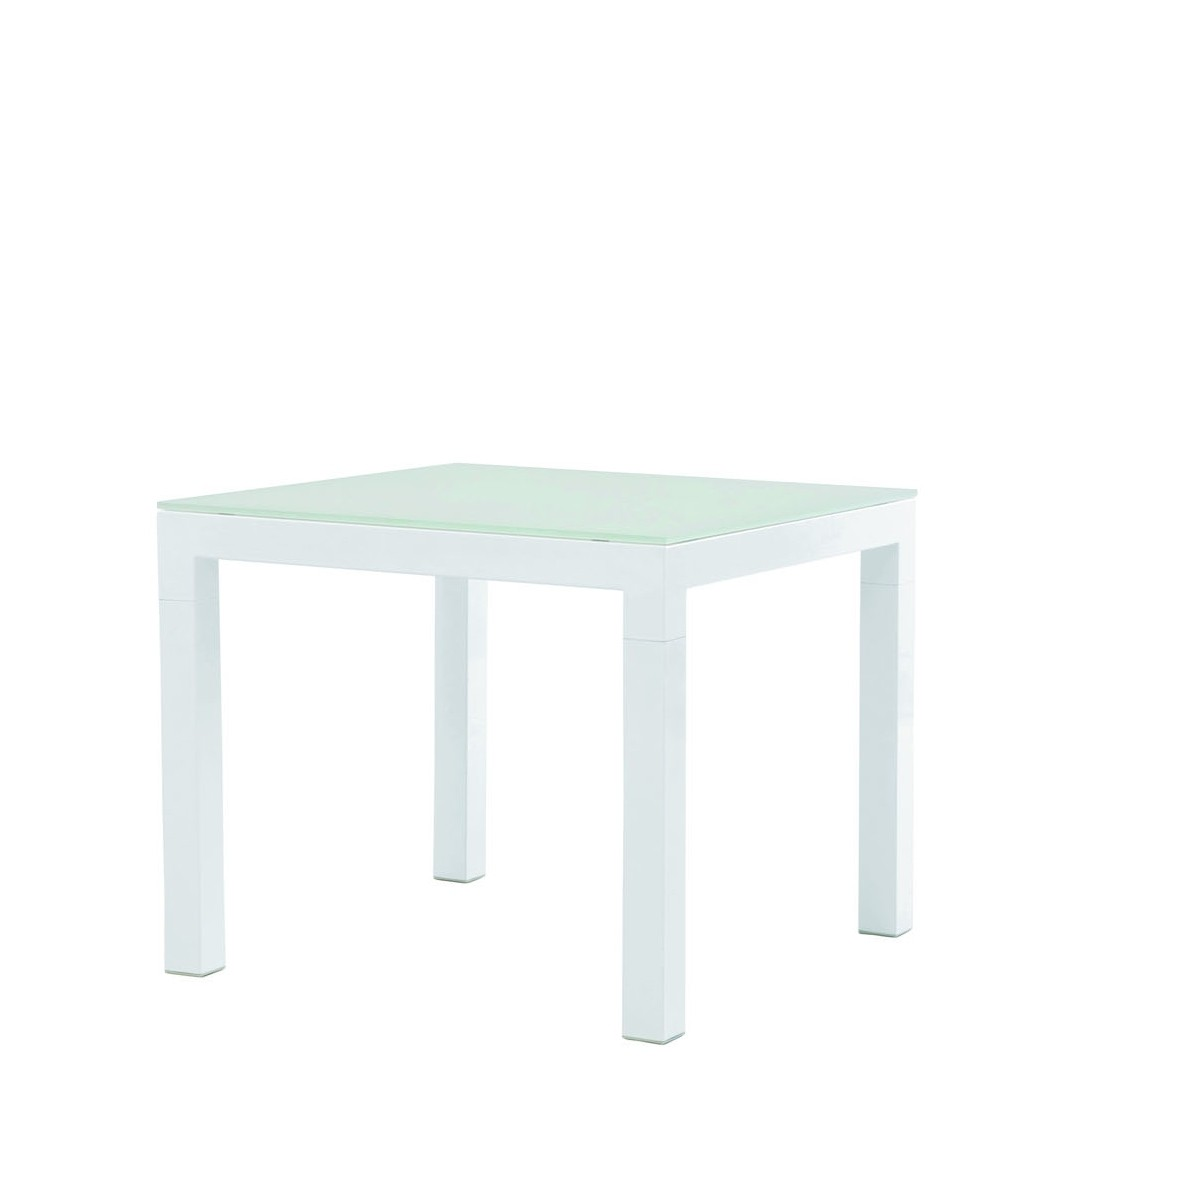 Taupe Carre 90x90 Carr Table ExtensibleStunning Espace Casa ON80kXnwPZ